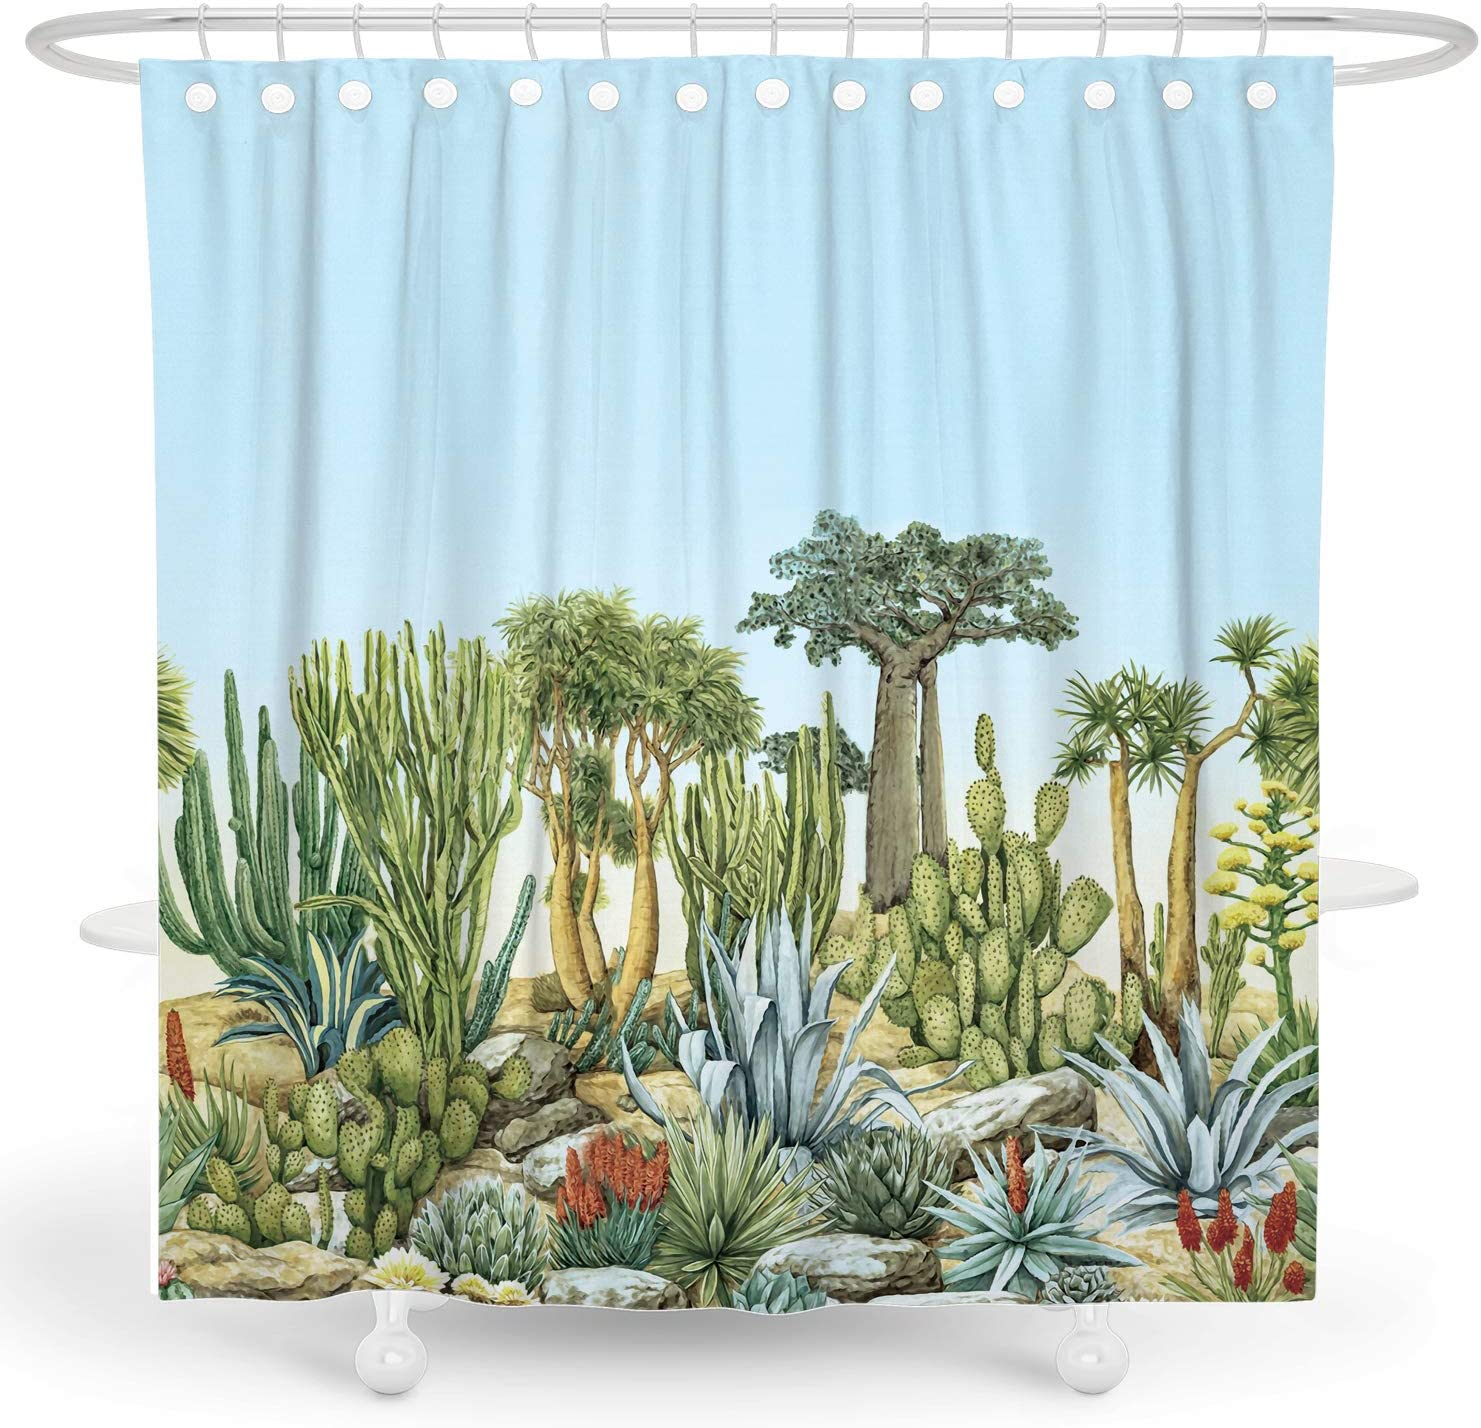 DESIHOM Cactus Shower Curtain 72x72 Inch Plant Shower Curtain Succulent Shower Curtain Leaf Botanical Shower Curtain Fall Shower Curtain Garden Desert Polyester Waterproof Shower Curtain